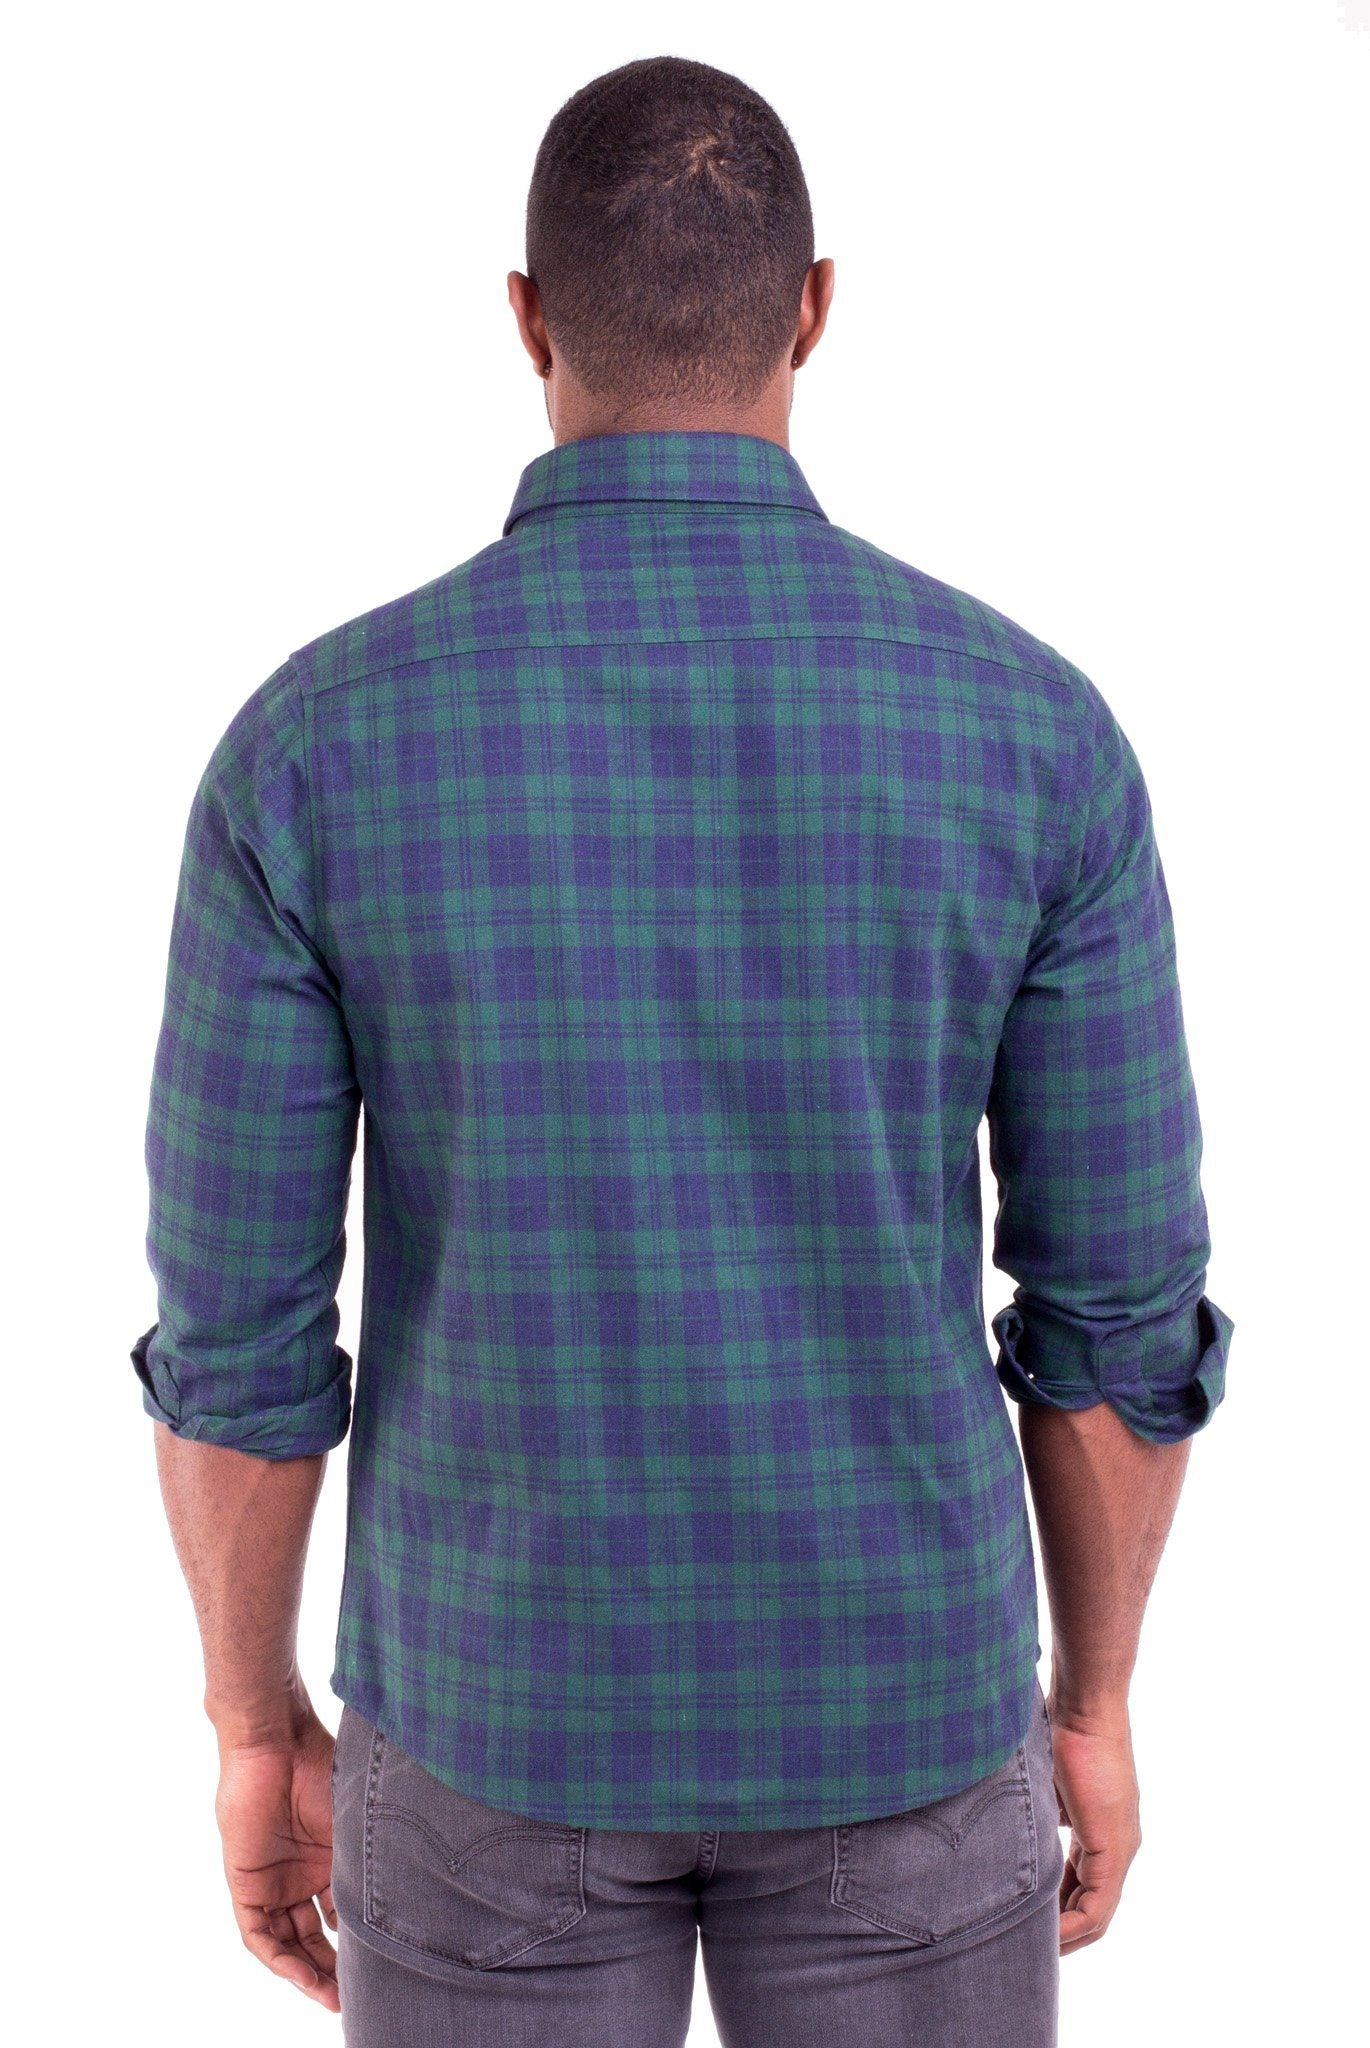 """JOHNNY"" GREEN/BLUE PLAID FLANNEL SHIRT"